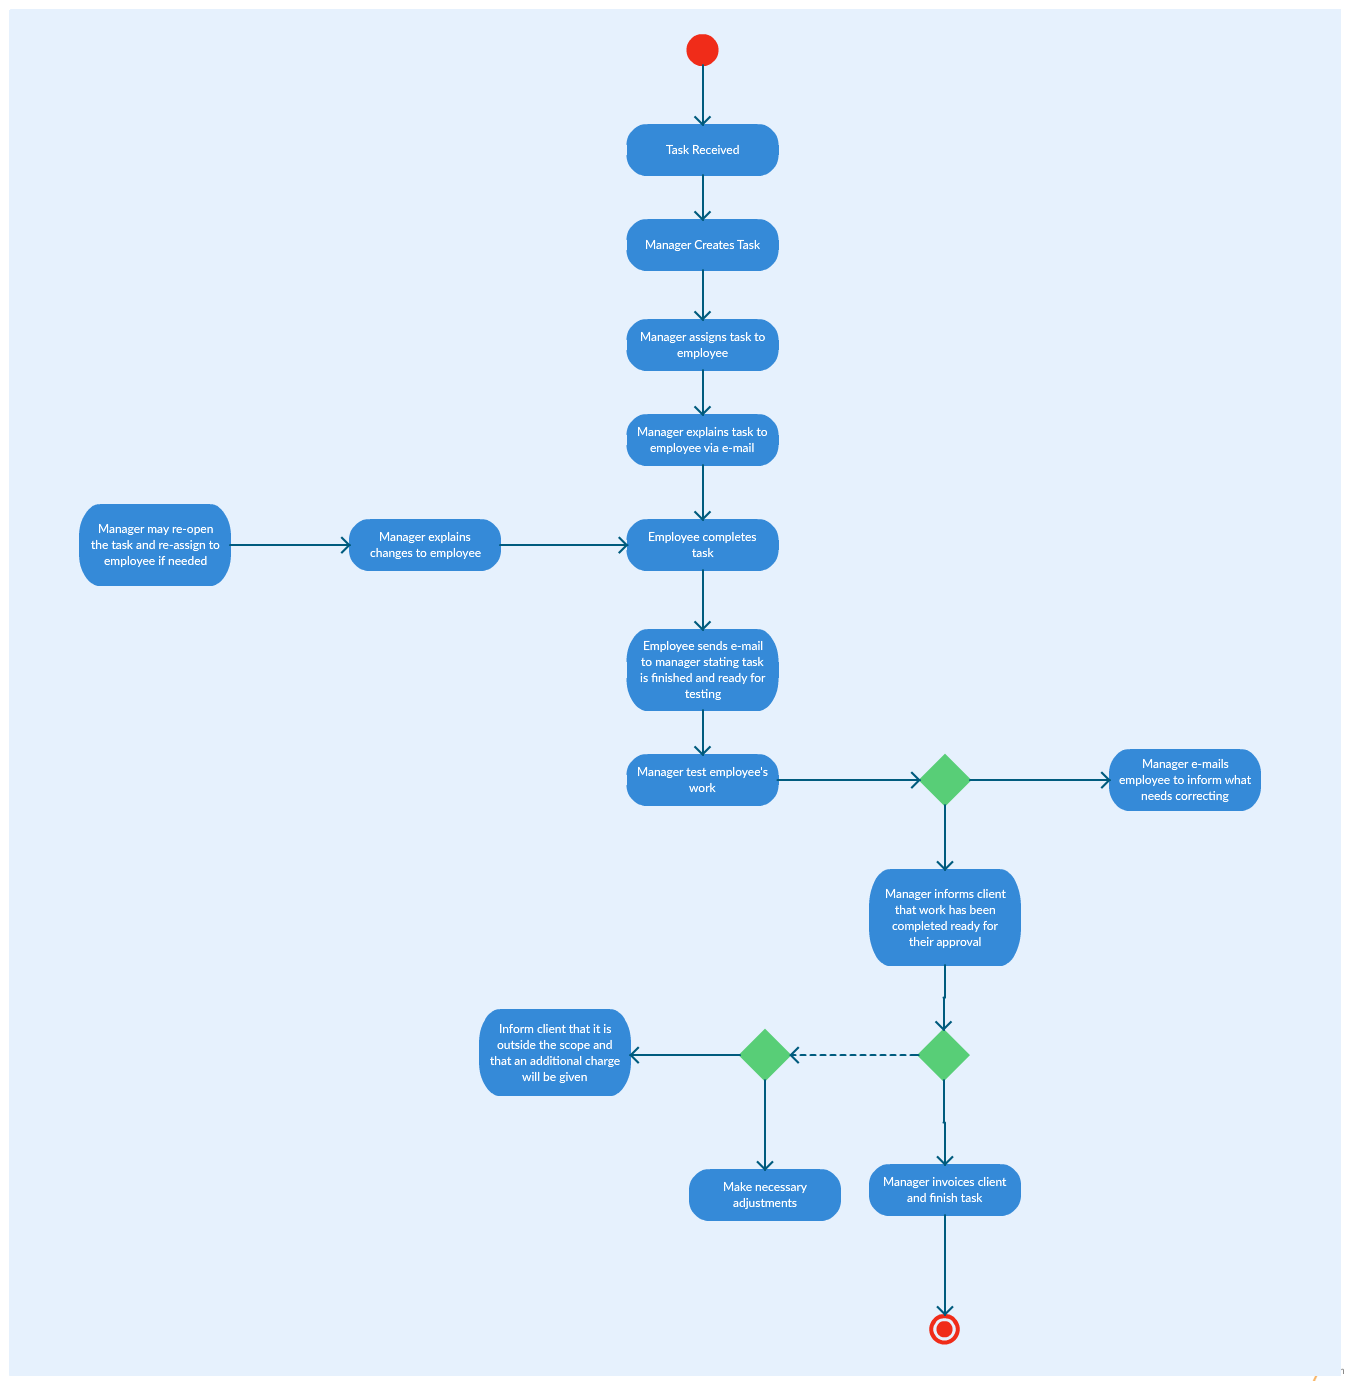 Activity diagram in project management